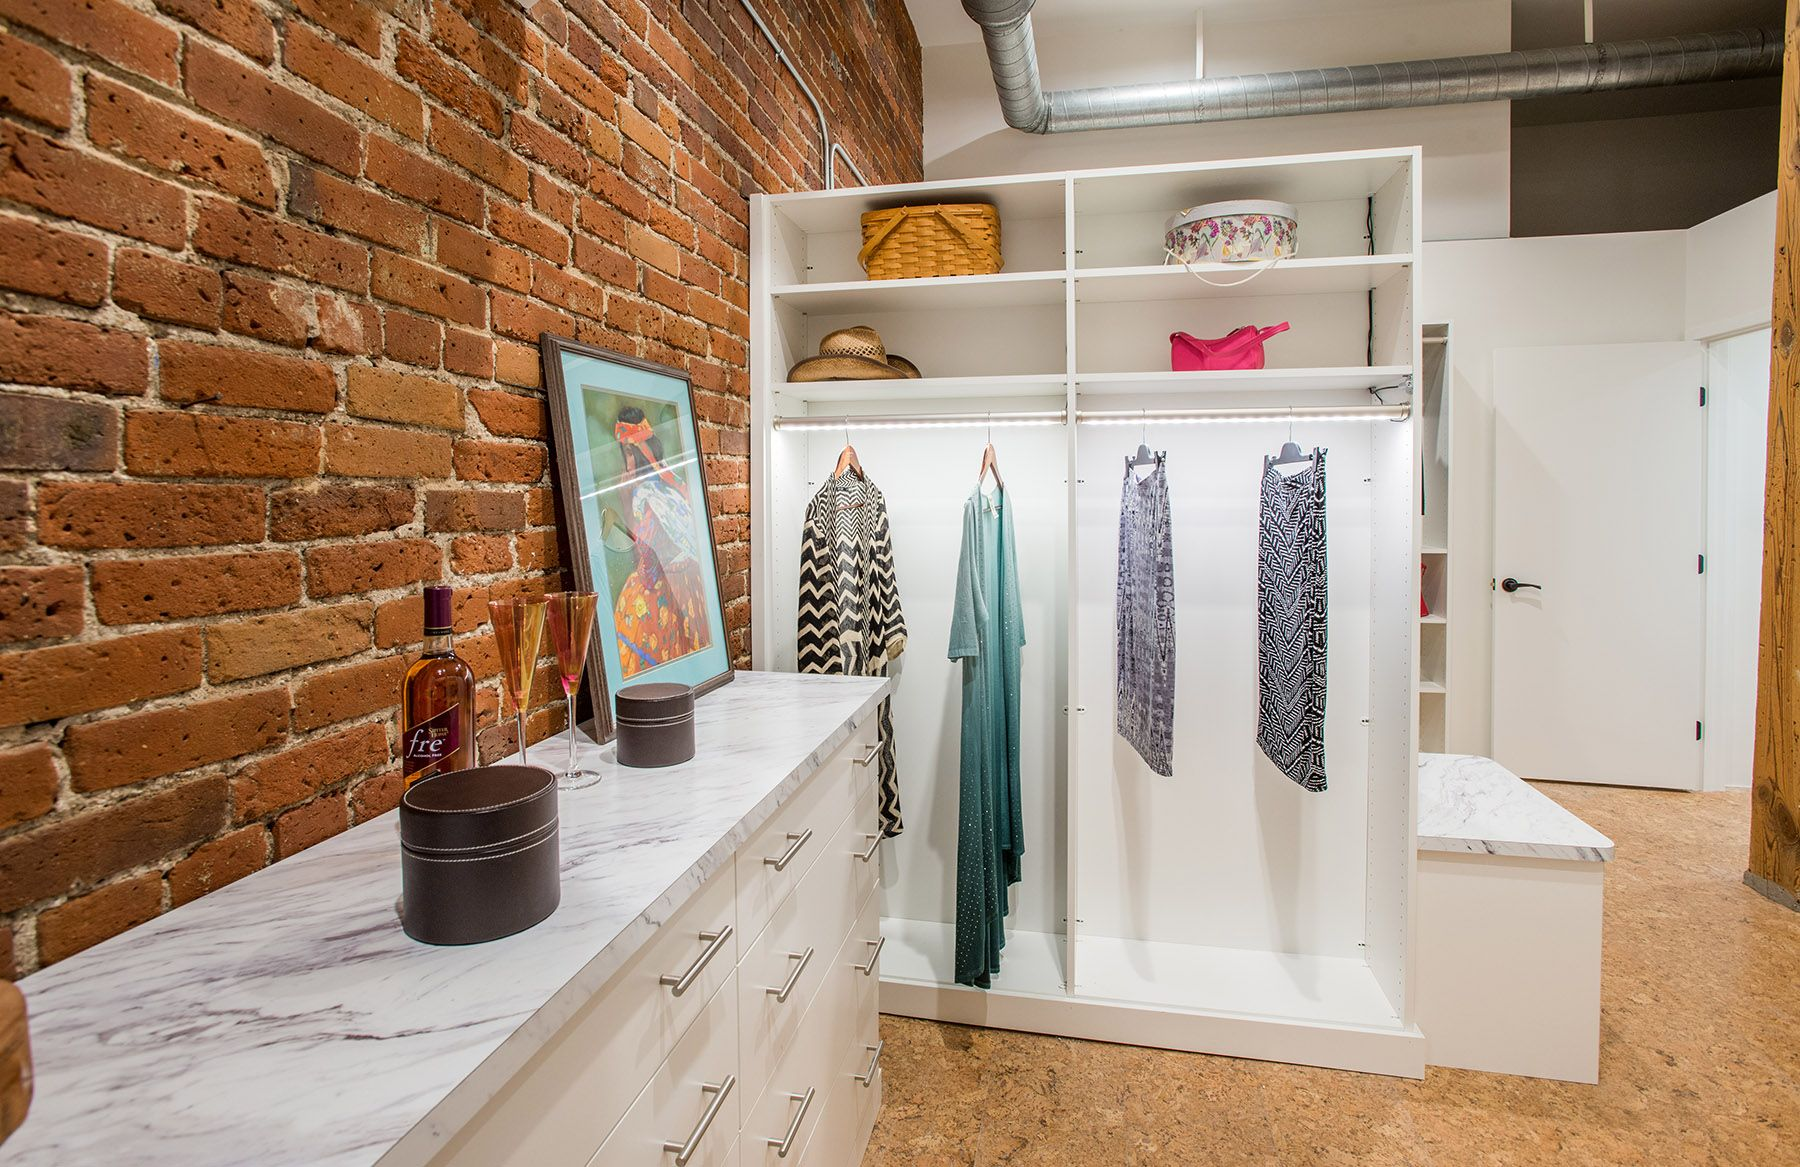 This Walk In Closet Built In This Denver Condo Features LED Lit Hanging Rods